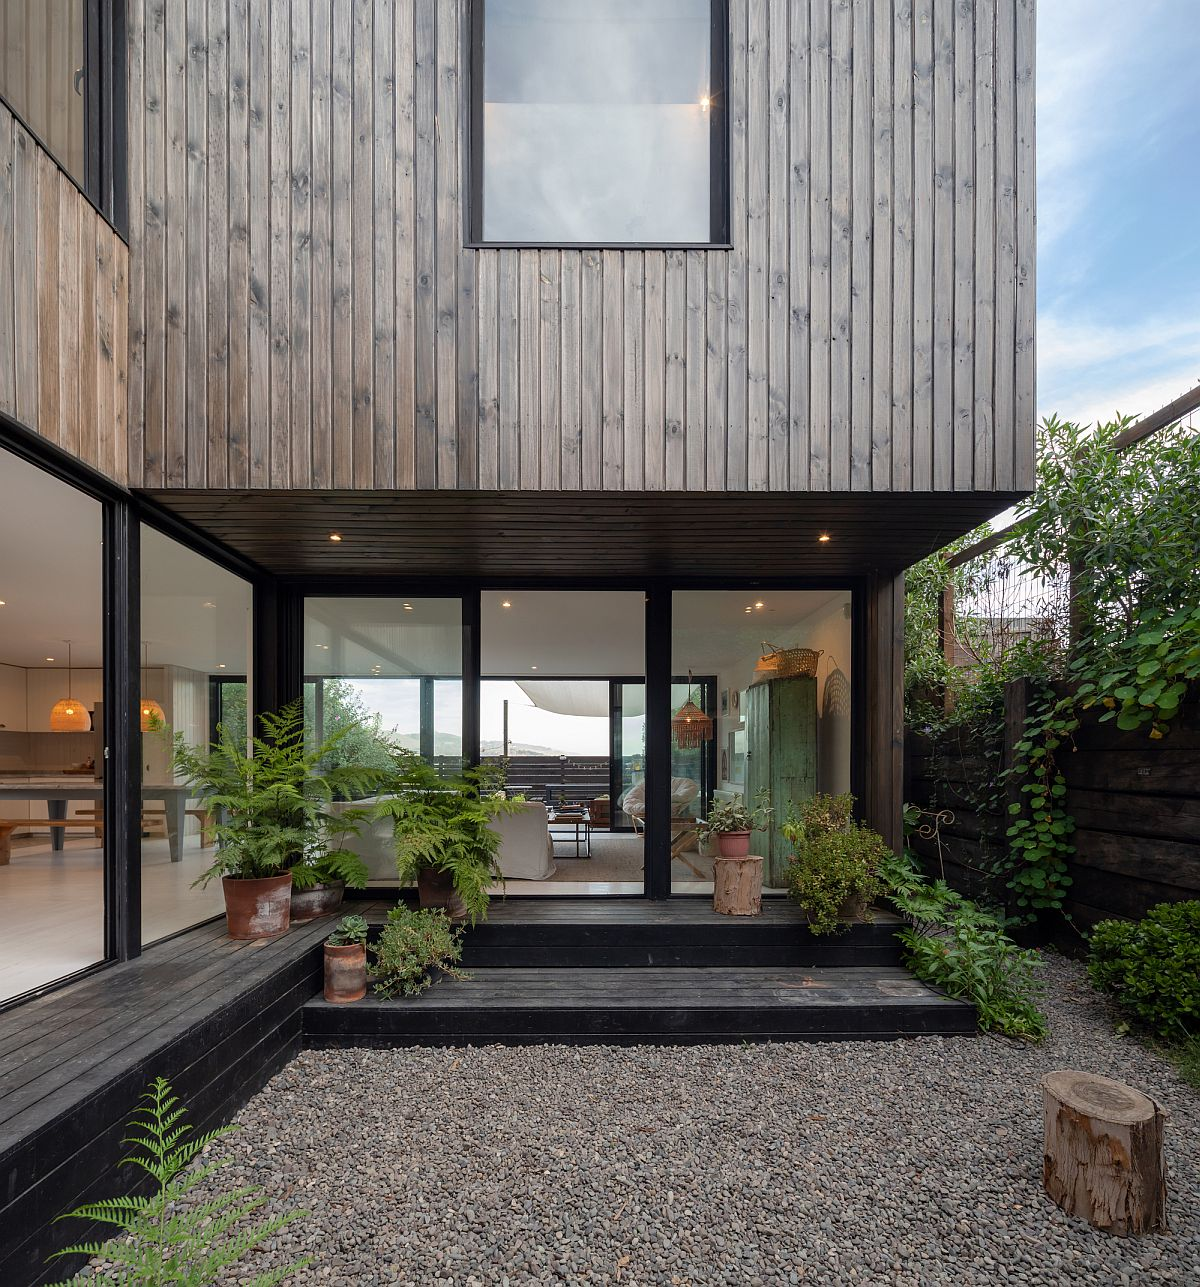 Cladding-in-grooved-pine-on-the-outside-gives-the-facade-its-distnctive-look-70455